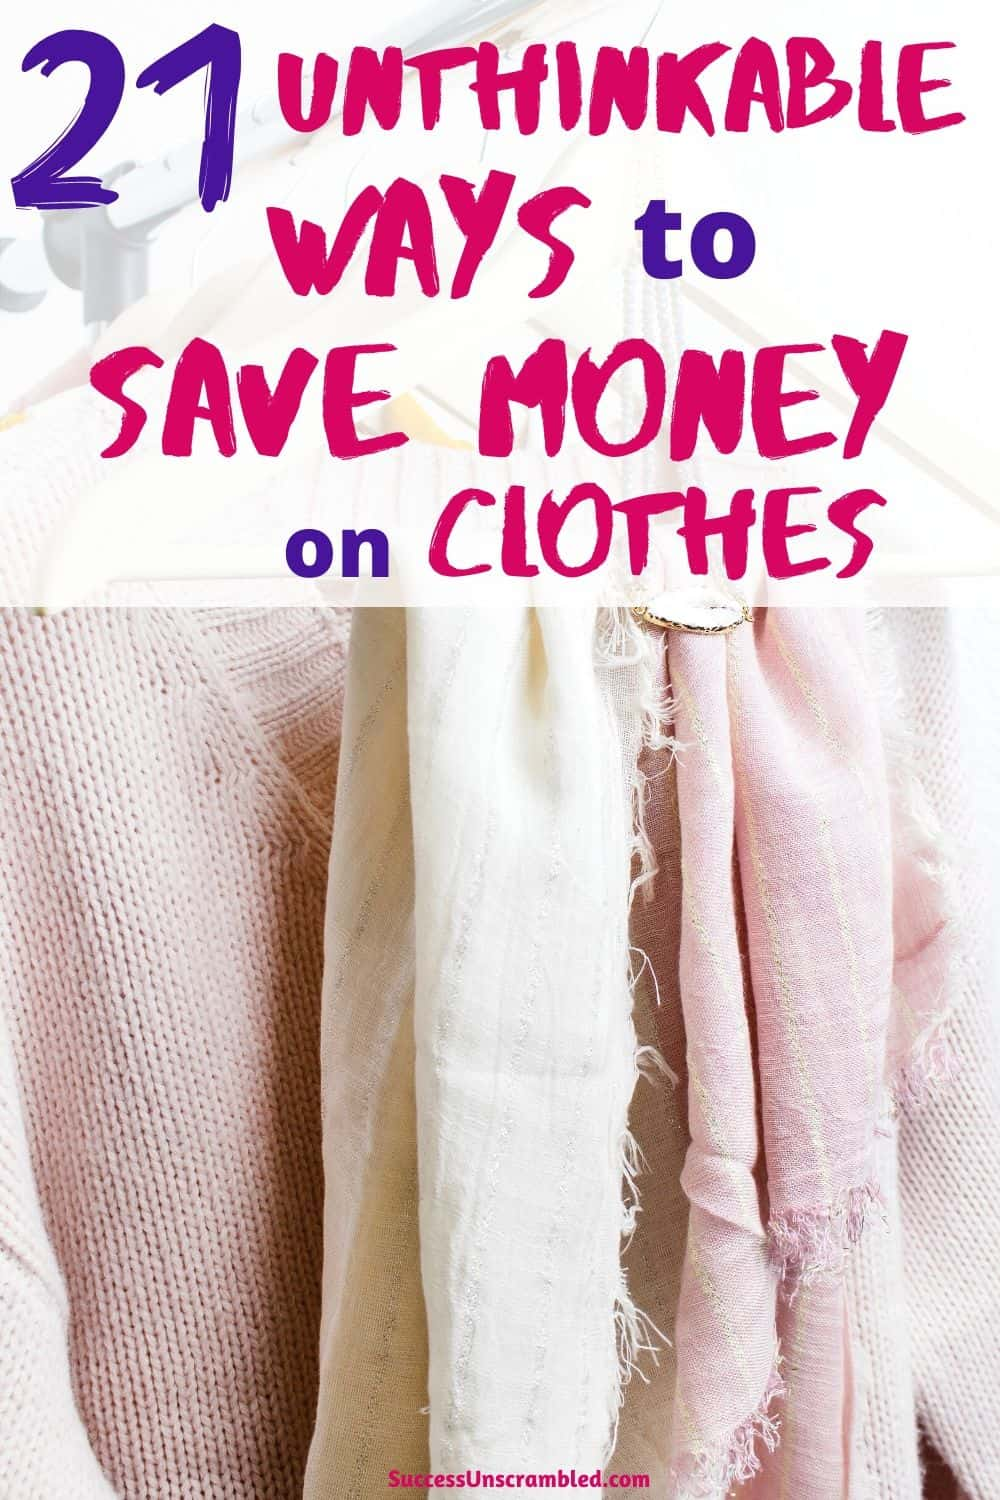 save money on clothes,  save money on fashion, save money on clothing, spend less on clothes - pin 2